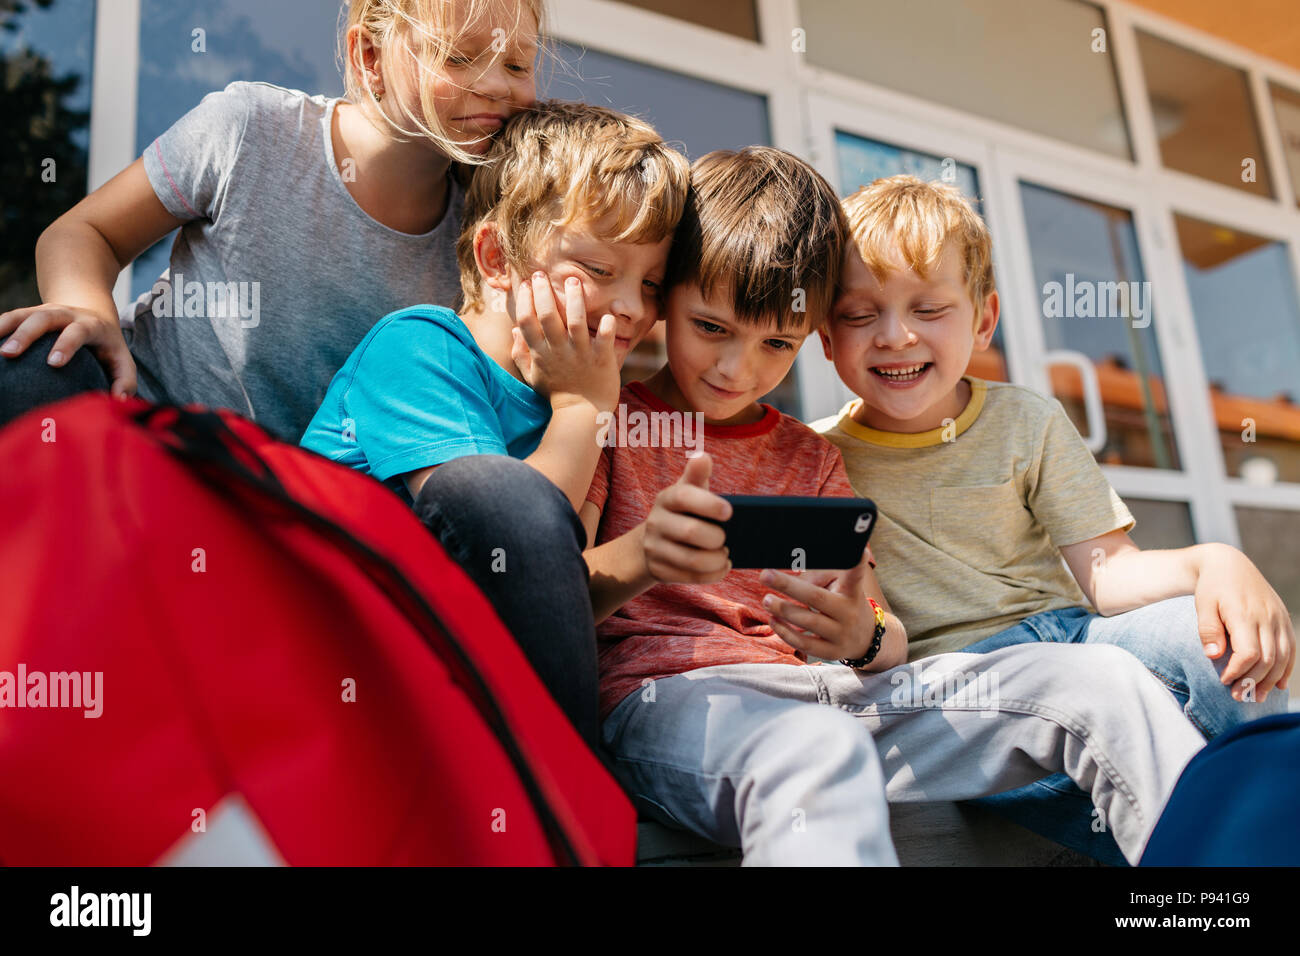 Young students playing with a mobile phone. Children having fun taking a selfie outside of school. - Stock Image